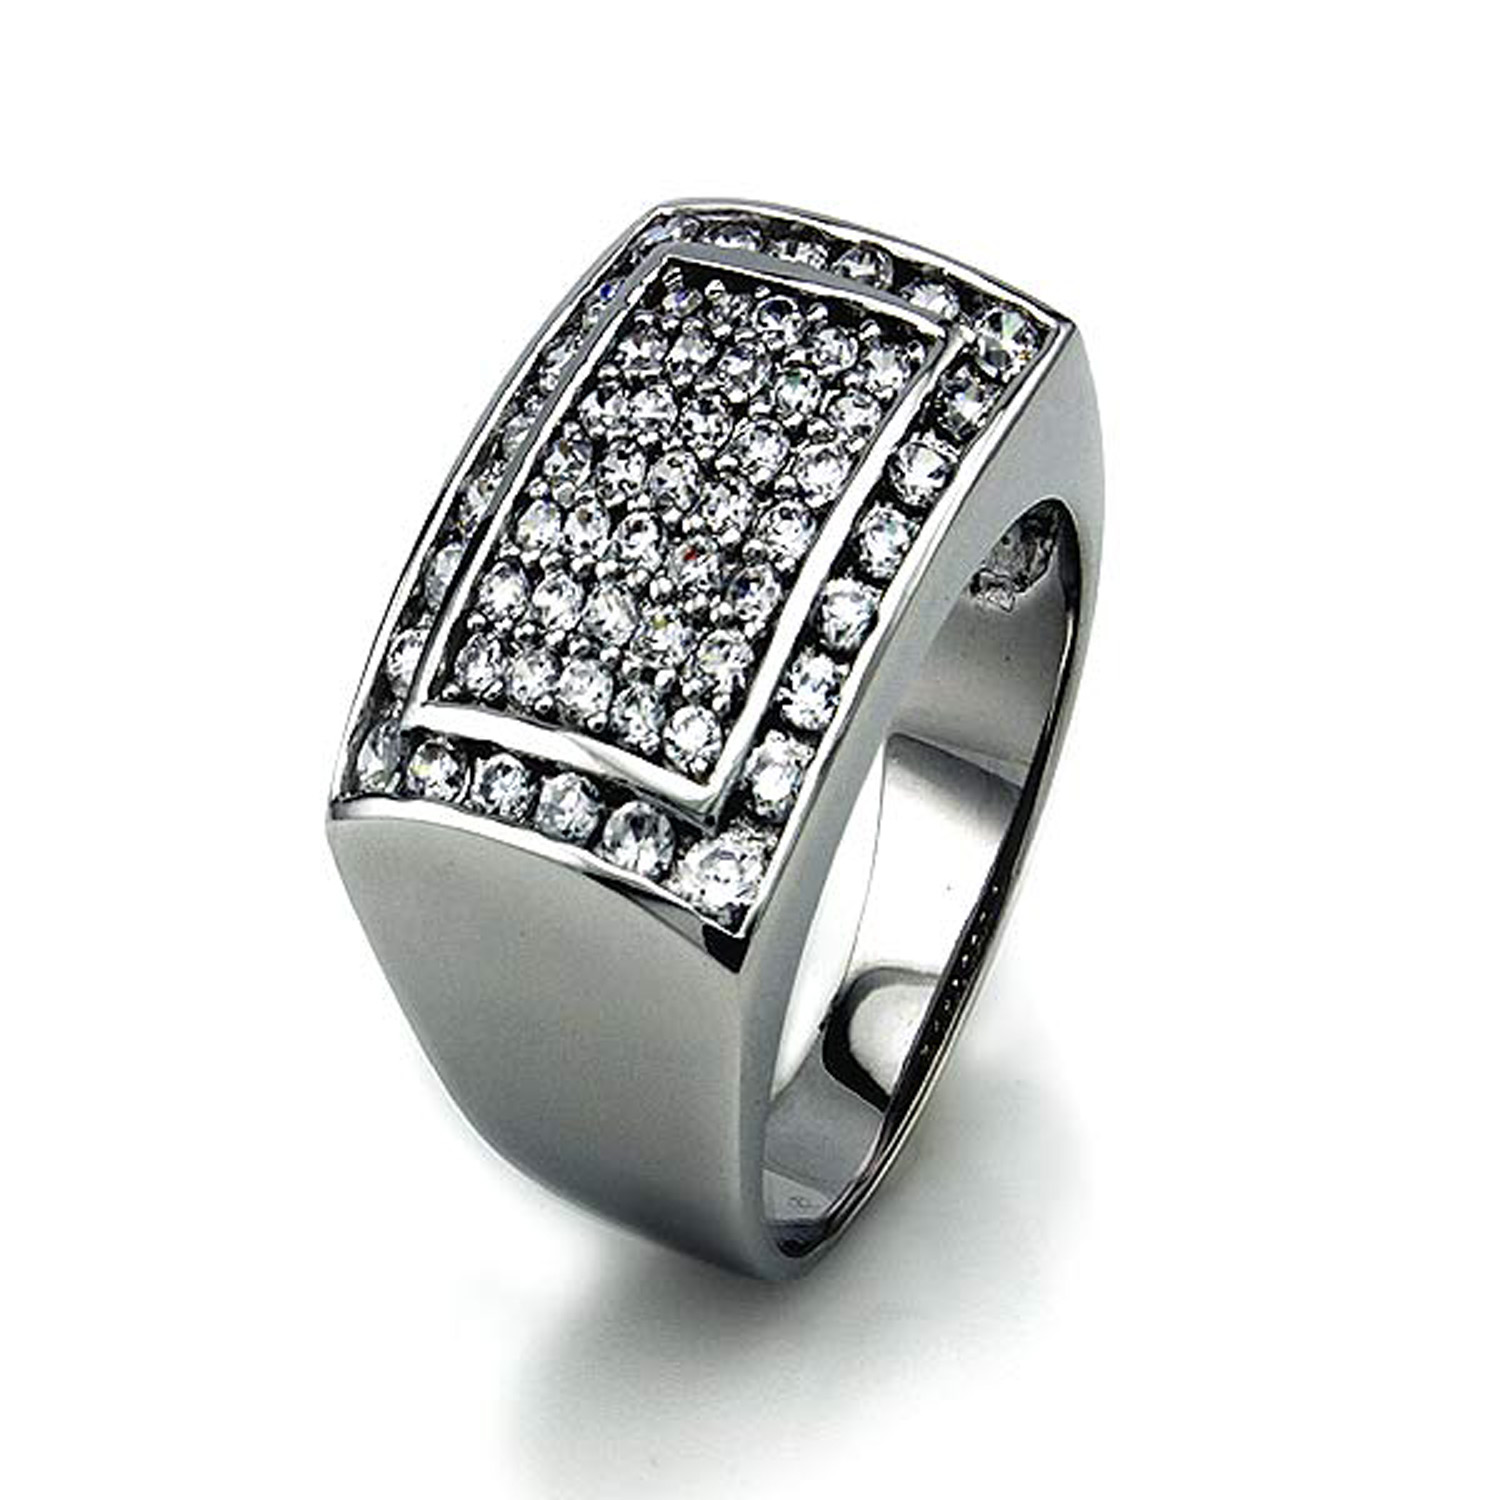 STERLING SILVER Pave-Set Cubic Zirconia Bulky Ring